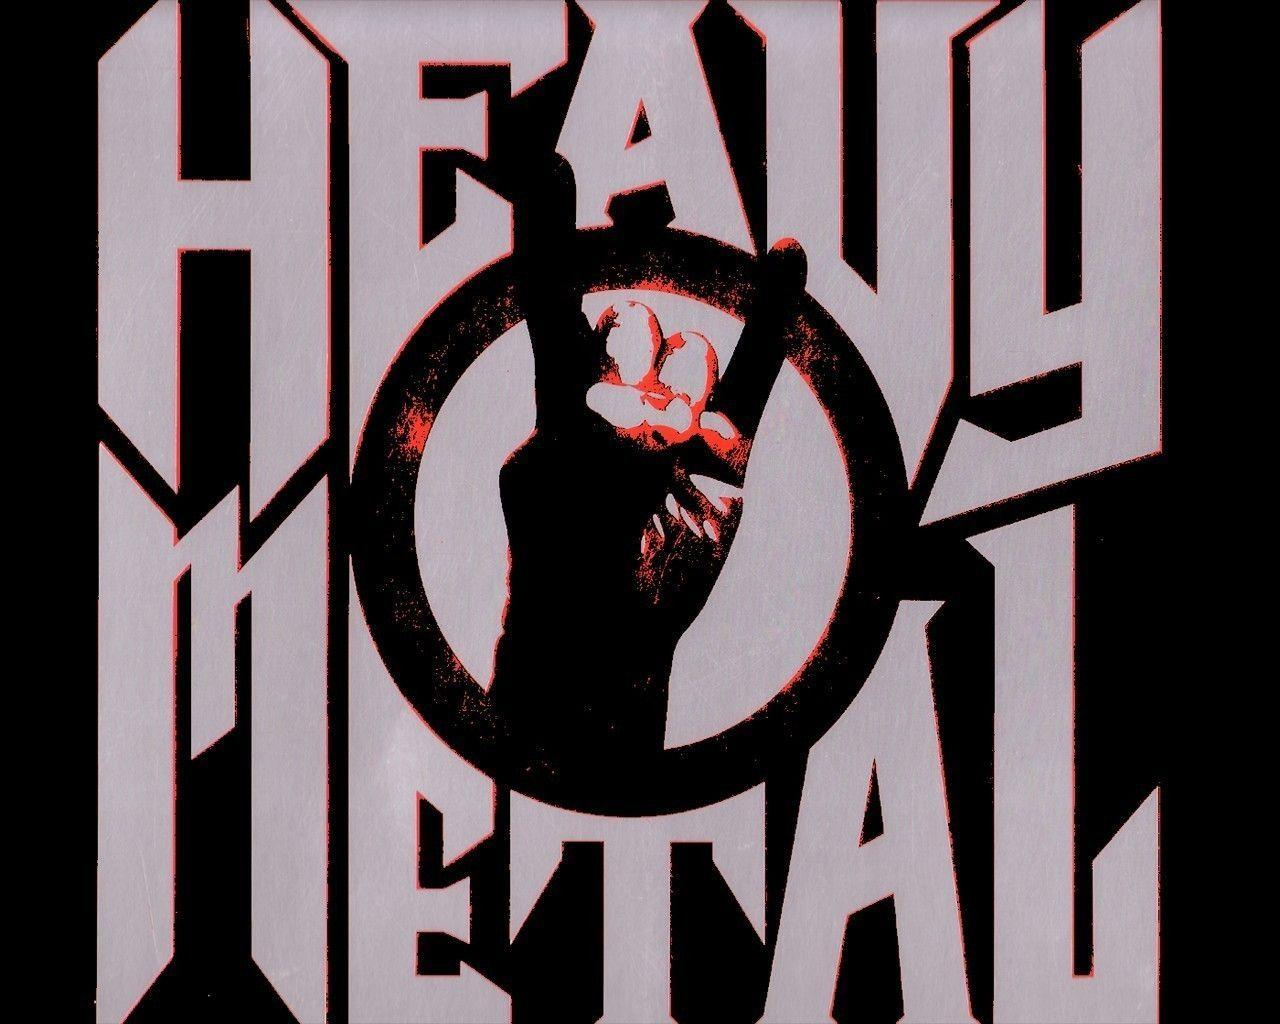 Heavy Metal Wallpaper - Metal Wallpaper (21000475) - Fanpop